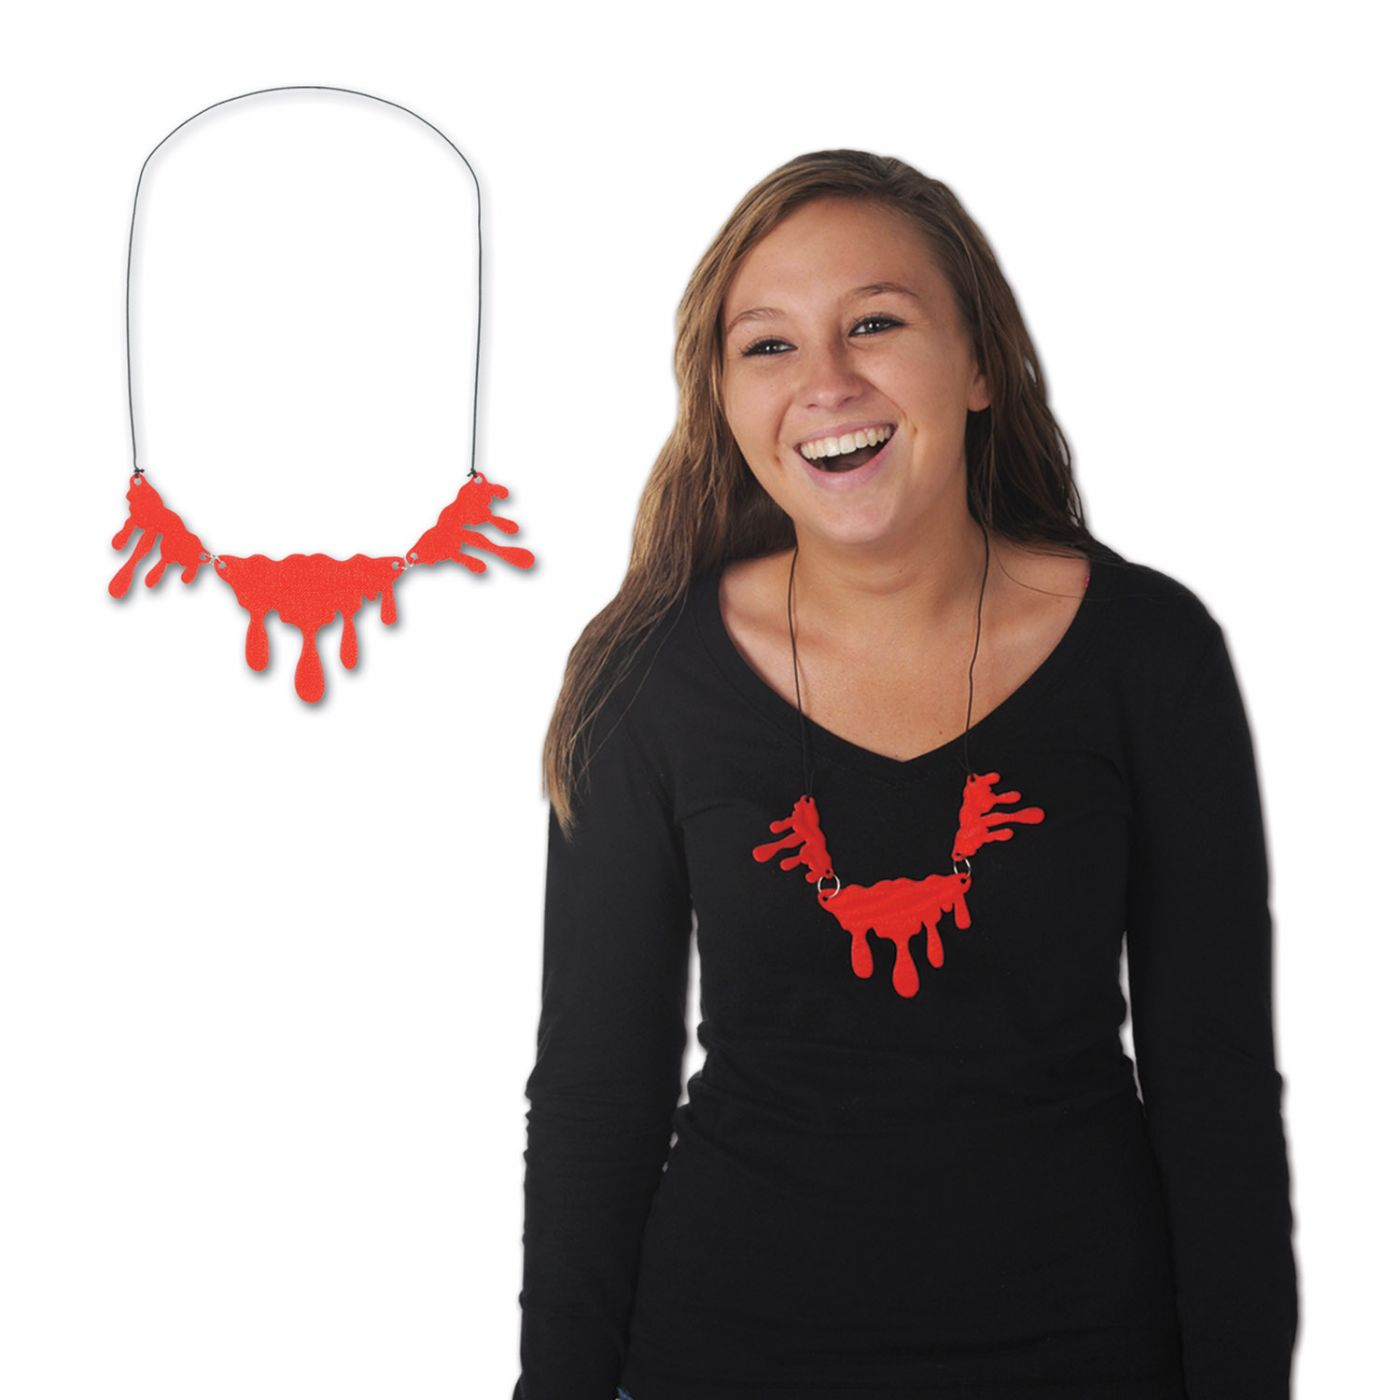 Dripping Blood Necklace image